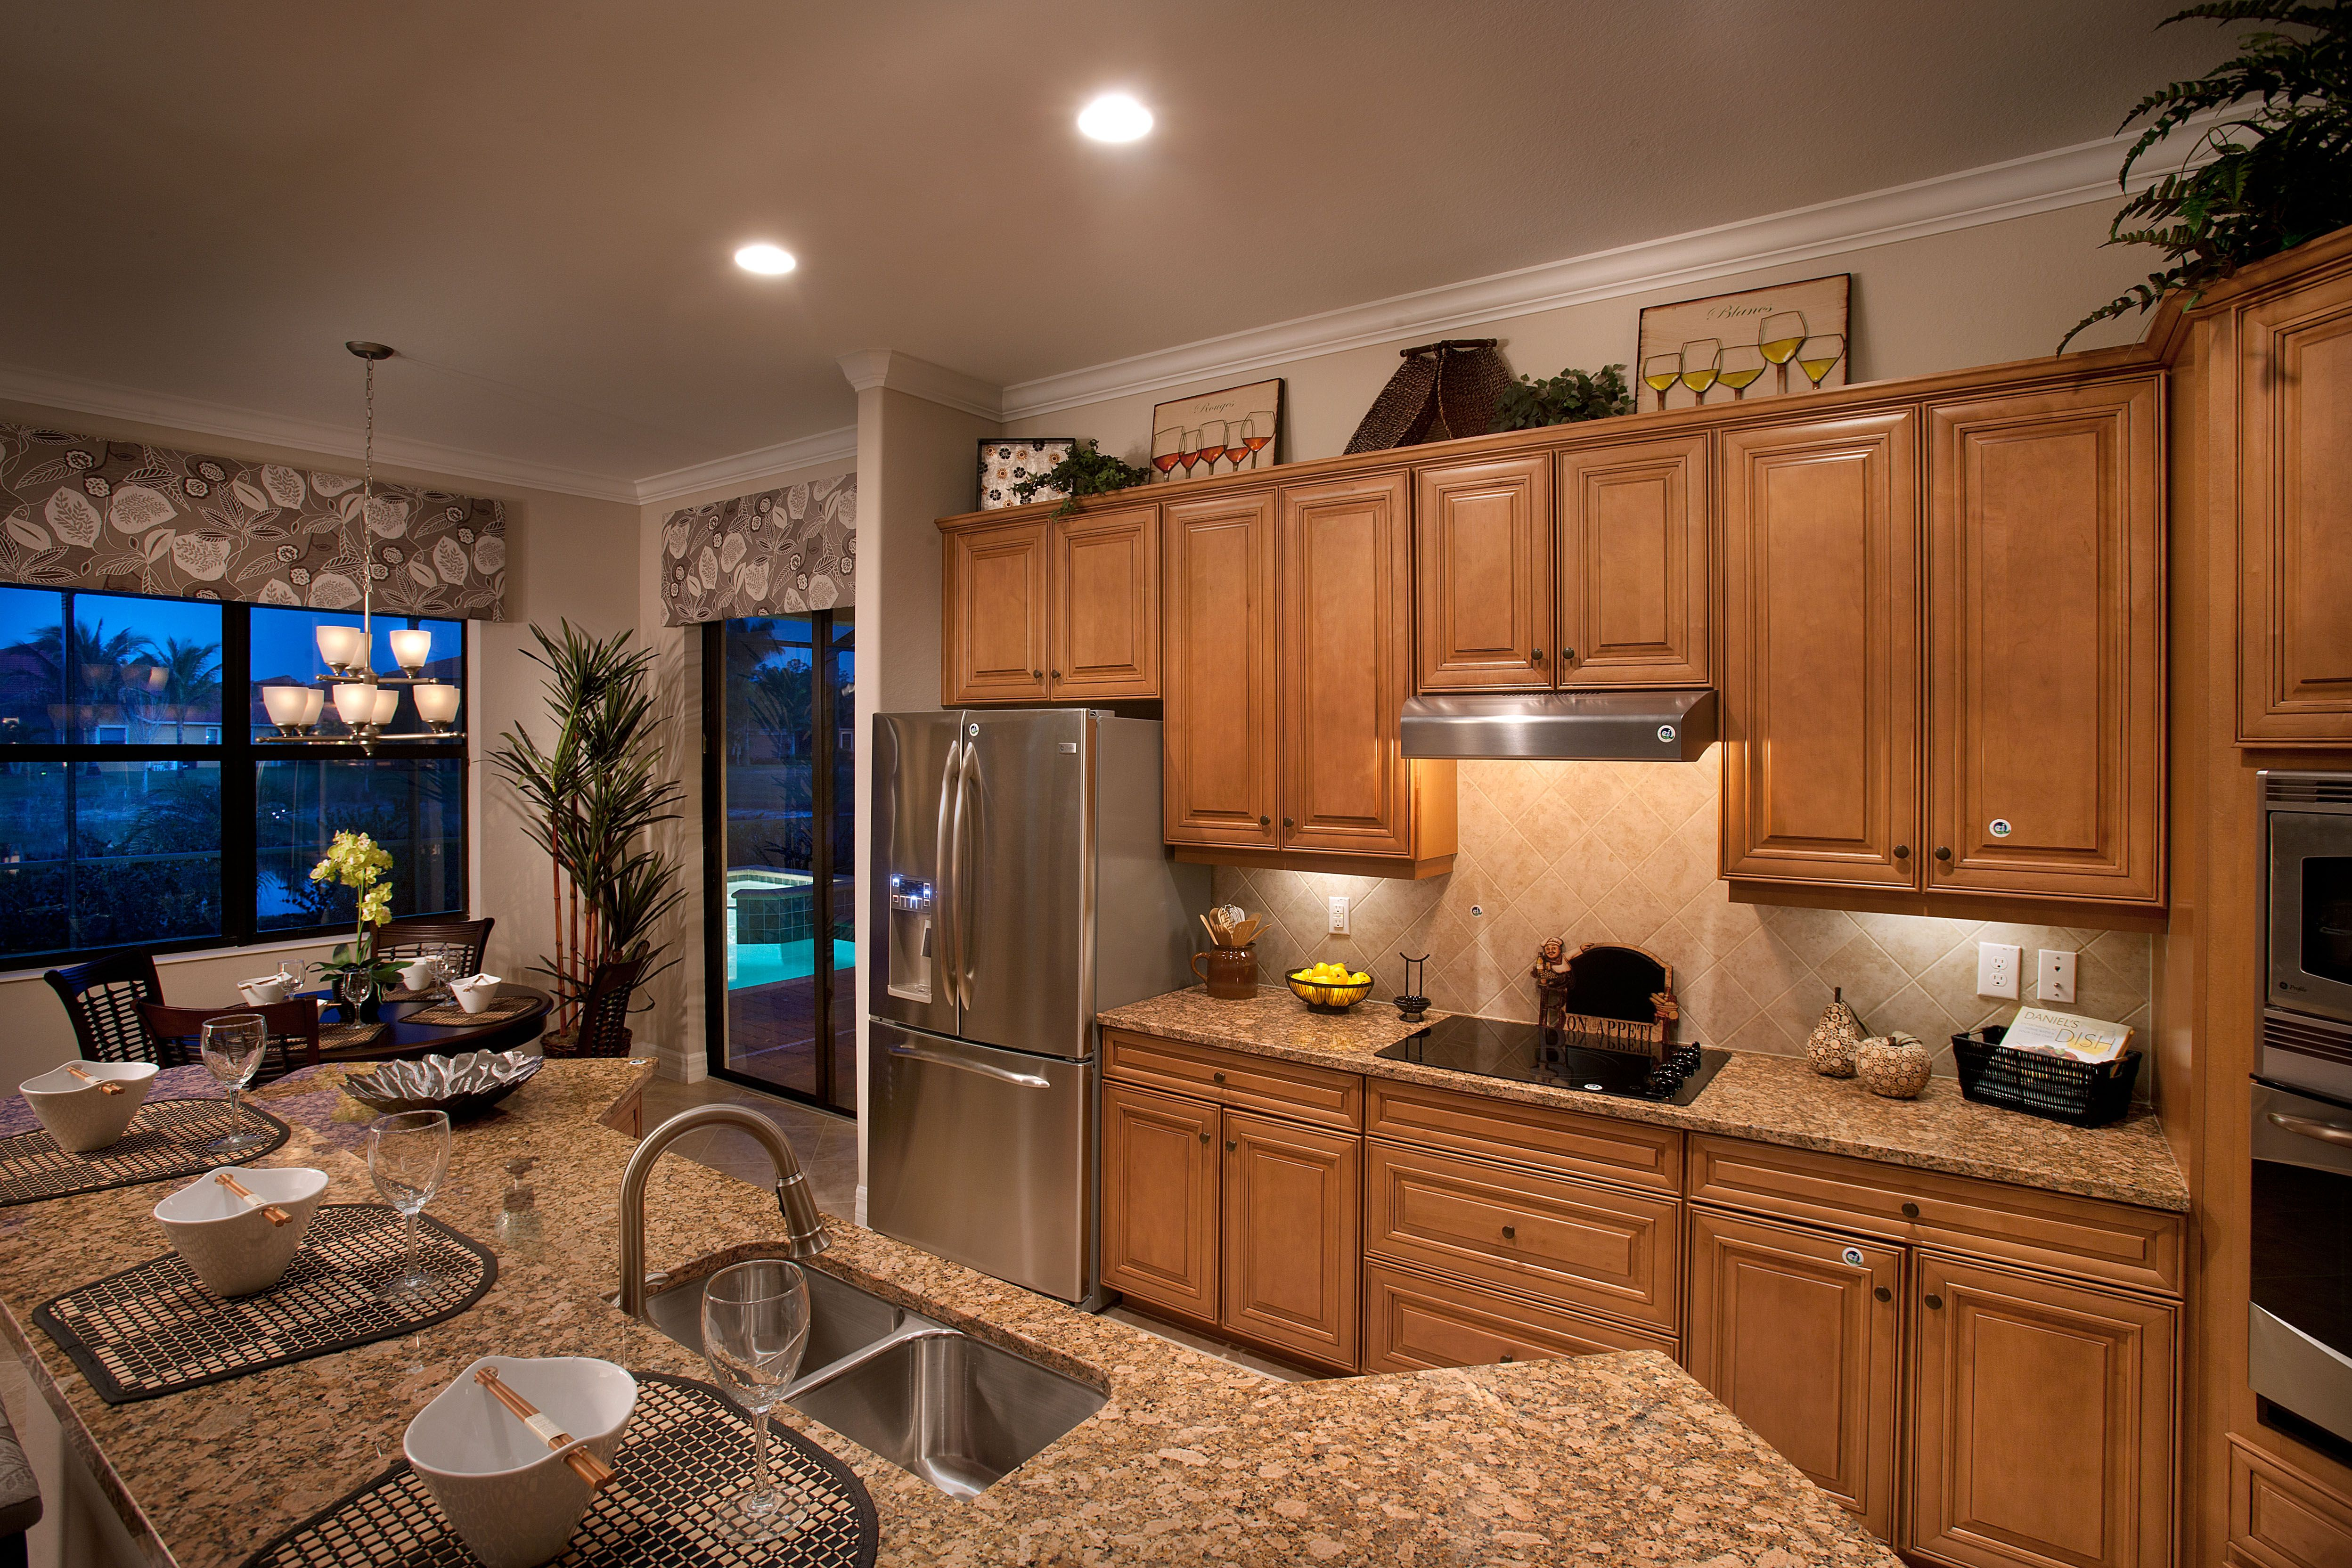 What Do You Think Of This Open Concept Kitchen Kitchen Remodel Small Kitchen Diy Makeover Kitchen Remodel